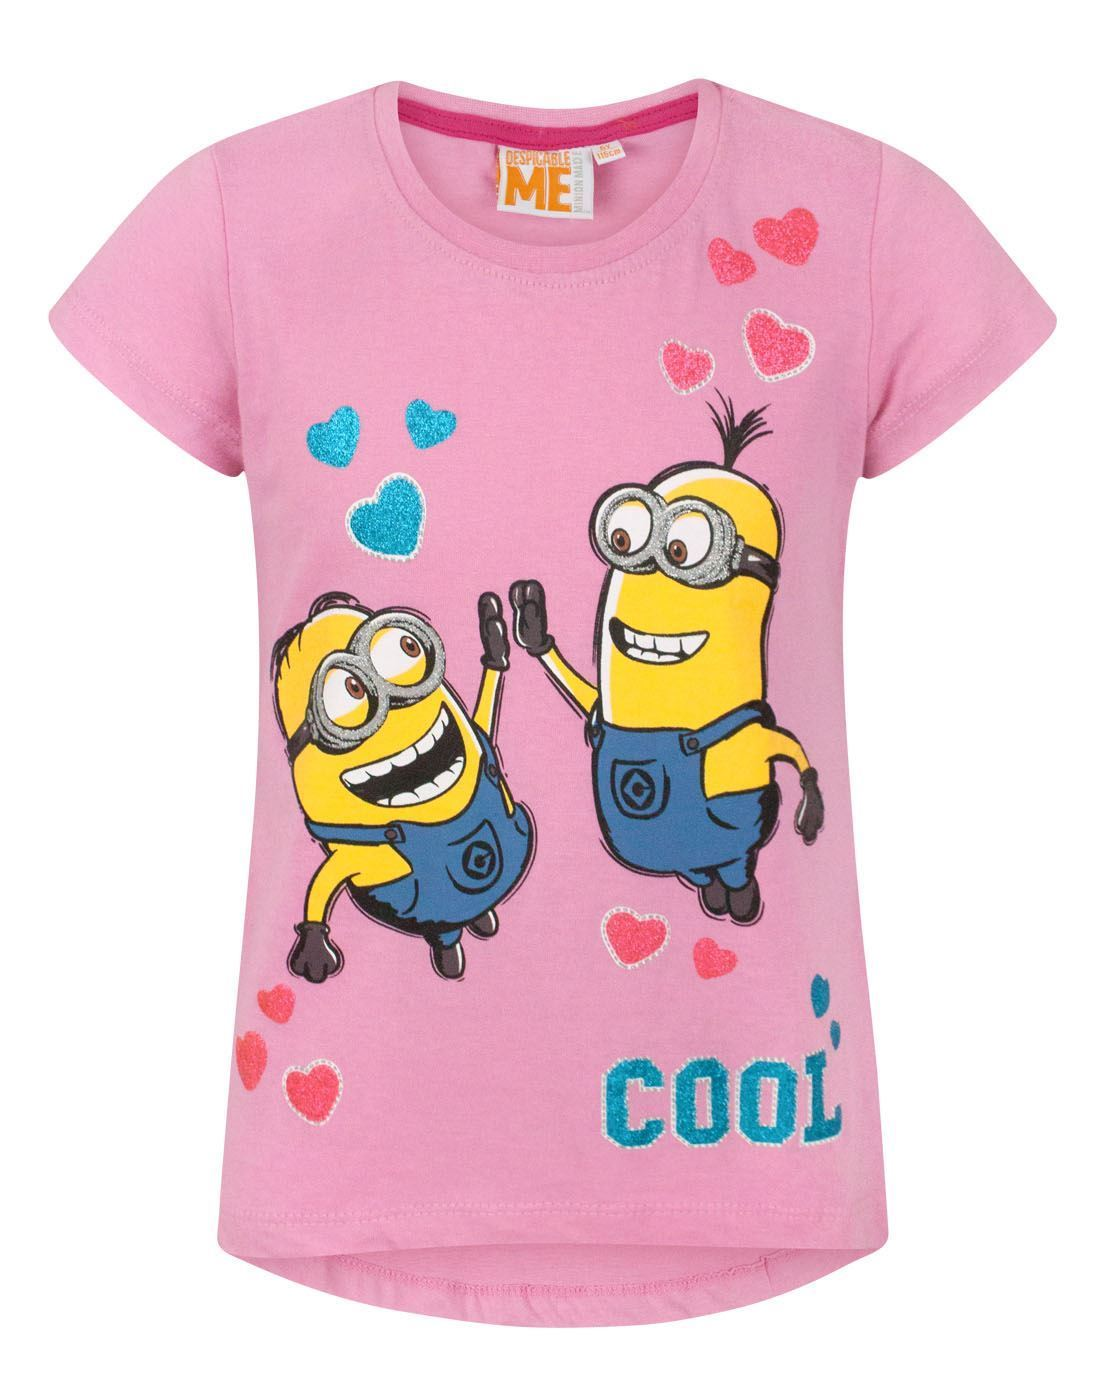 eb228a910 Despicable Me Cool Girl's T-Shirt – Vanilla Underground